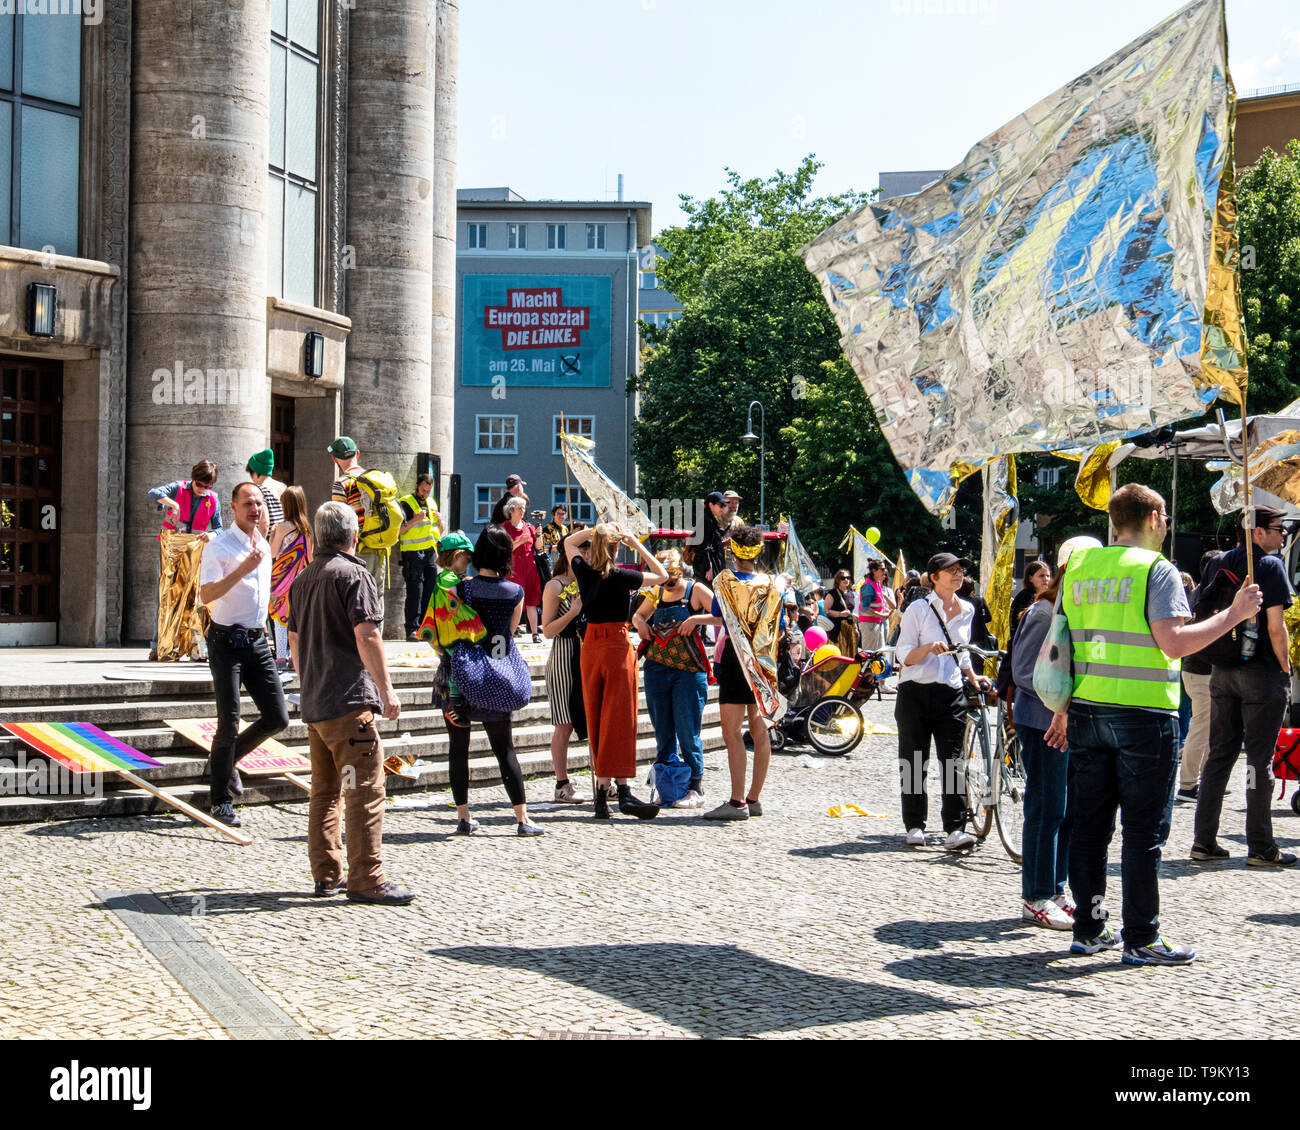 Germany, Berlin, Mitte. May 19, 2019. Unite & Shine Parade at Rosa-Luxemburg-Platz. Demonstration for solidarity in Europe before the upcoming European Elections. People unite under the slogan 'For a Europe of the many' in a move against nationalism, exclusion, racism, and the restrictions of artistic freedom in Europe. The demo was organised by 'Die Vielen' (The Many) - an organization that was founded in 2017 to actively foster democratic culture. Credit: Eden Breitz/Alamy - Stock Image